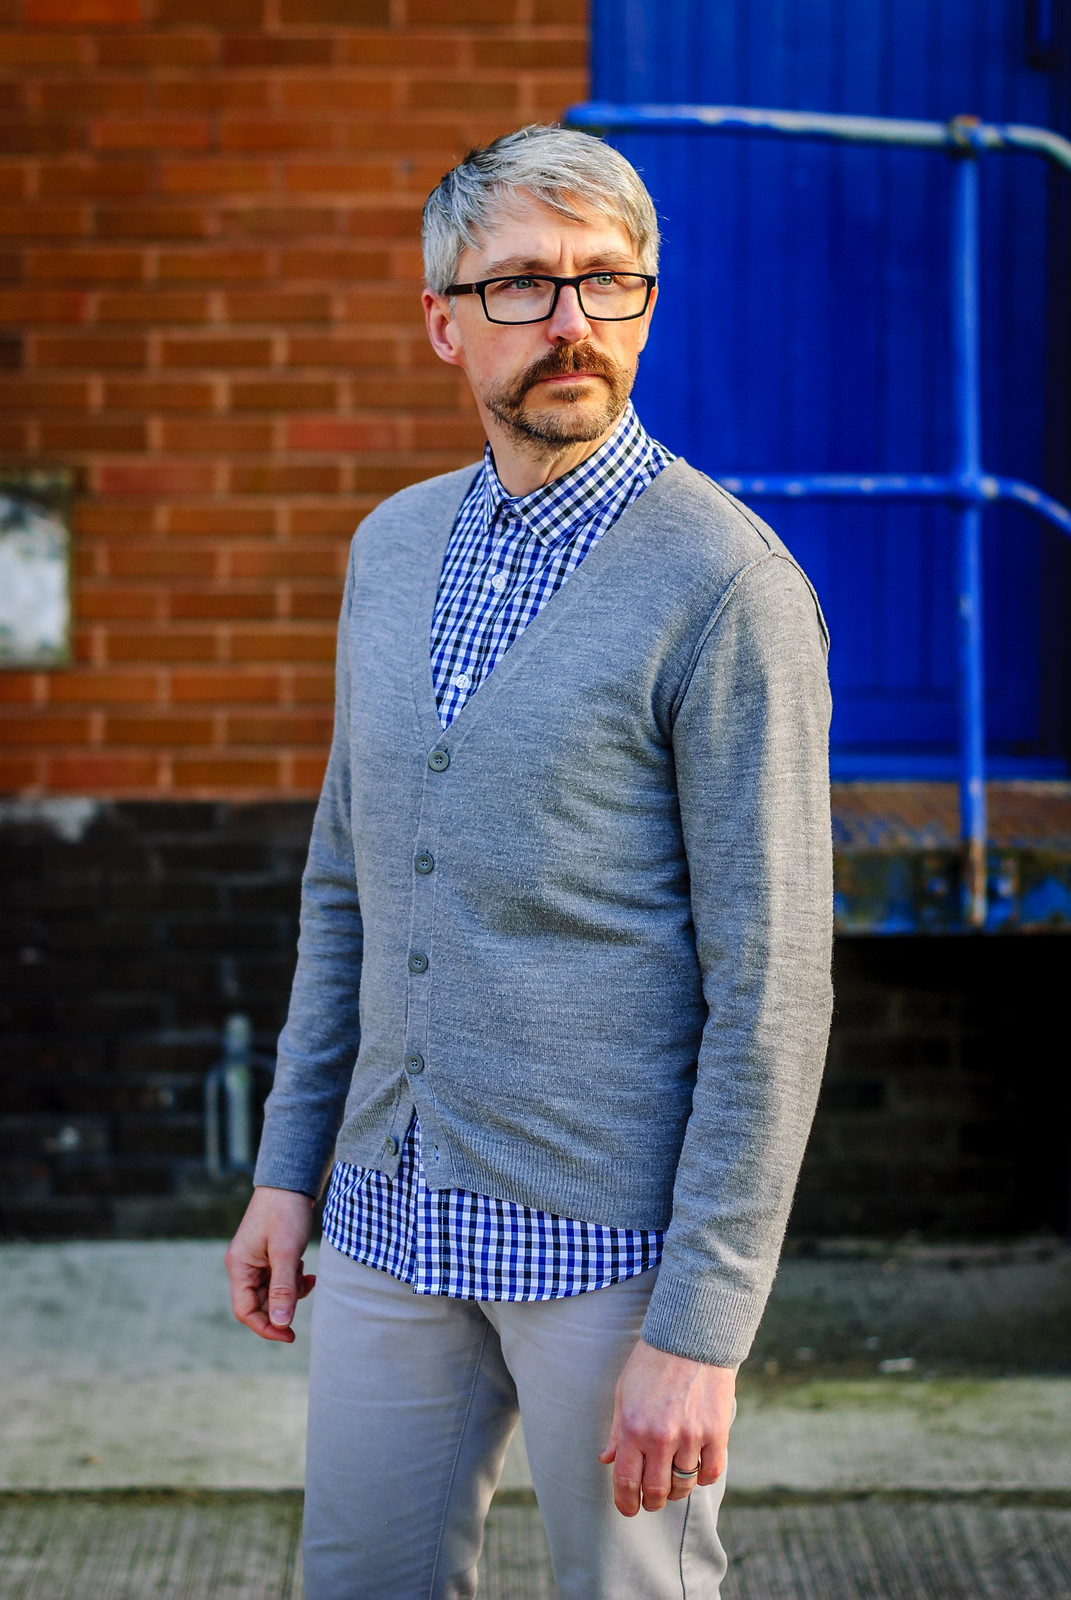 Smart Casual Menswear: Gingham Check Shirt \ Cardigan \ Grey Chinos \ Desert Boots \ Silver Londoner, over 40 style